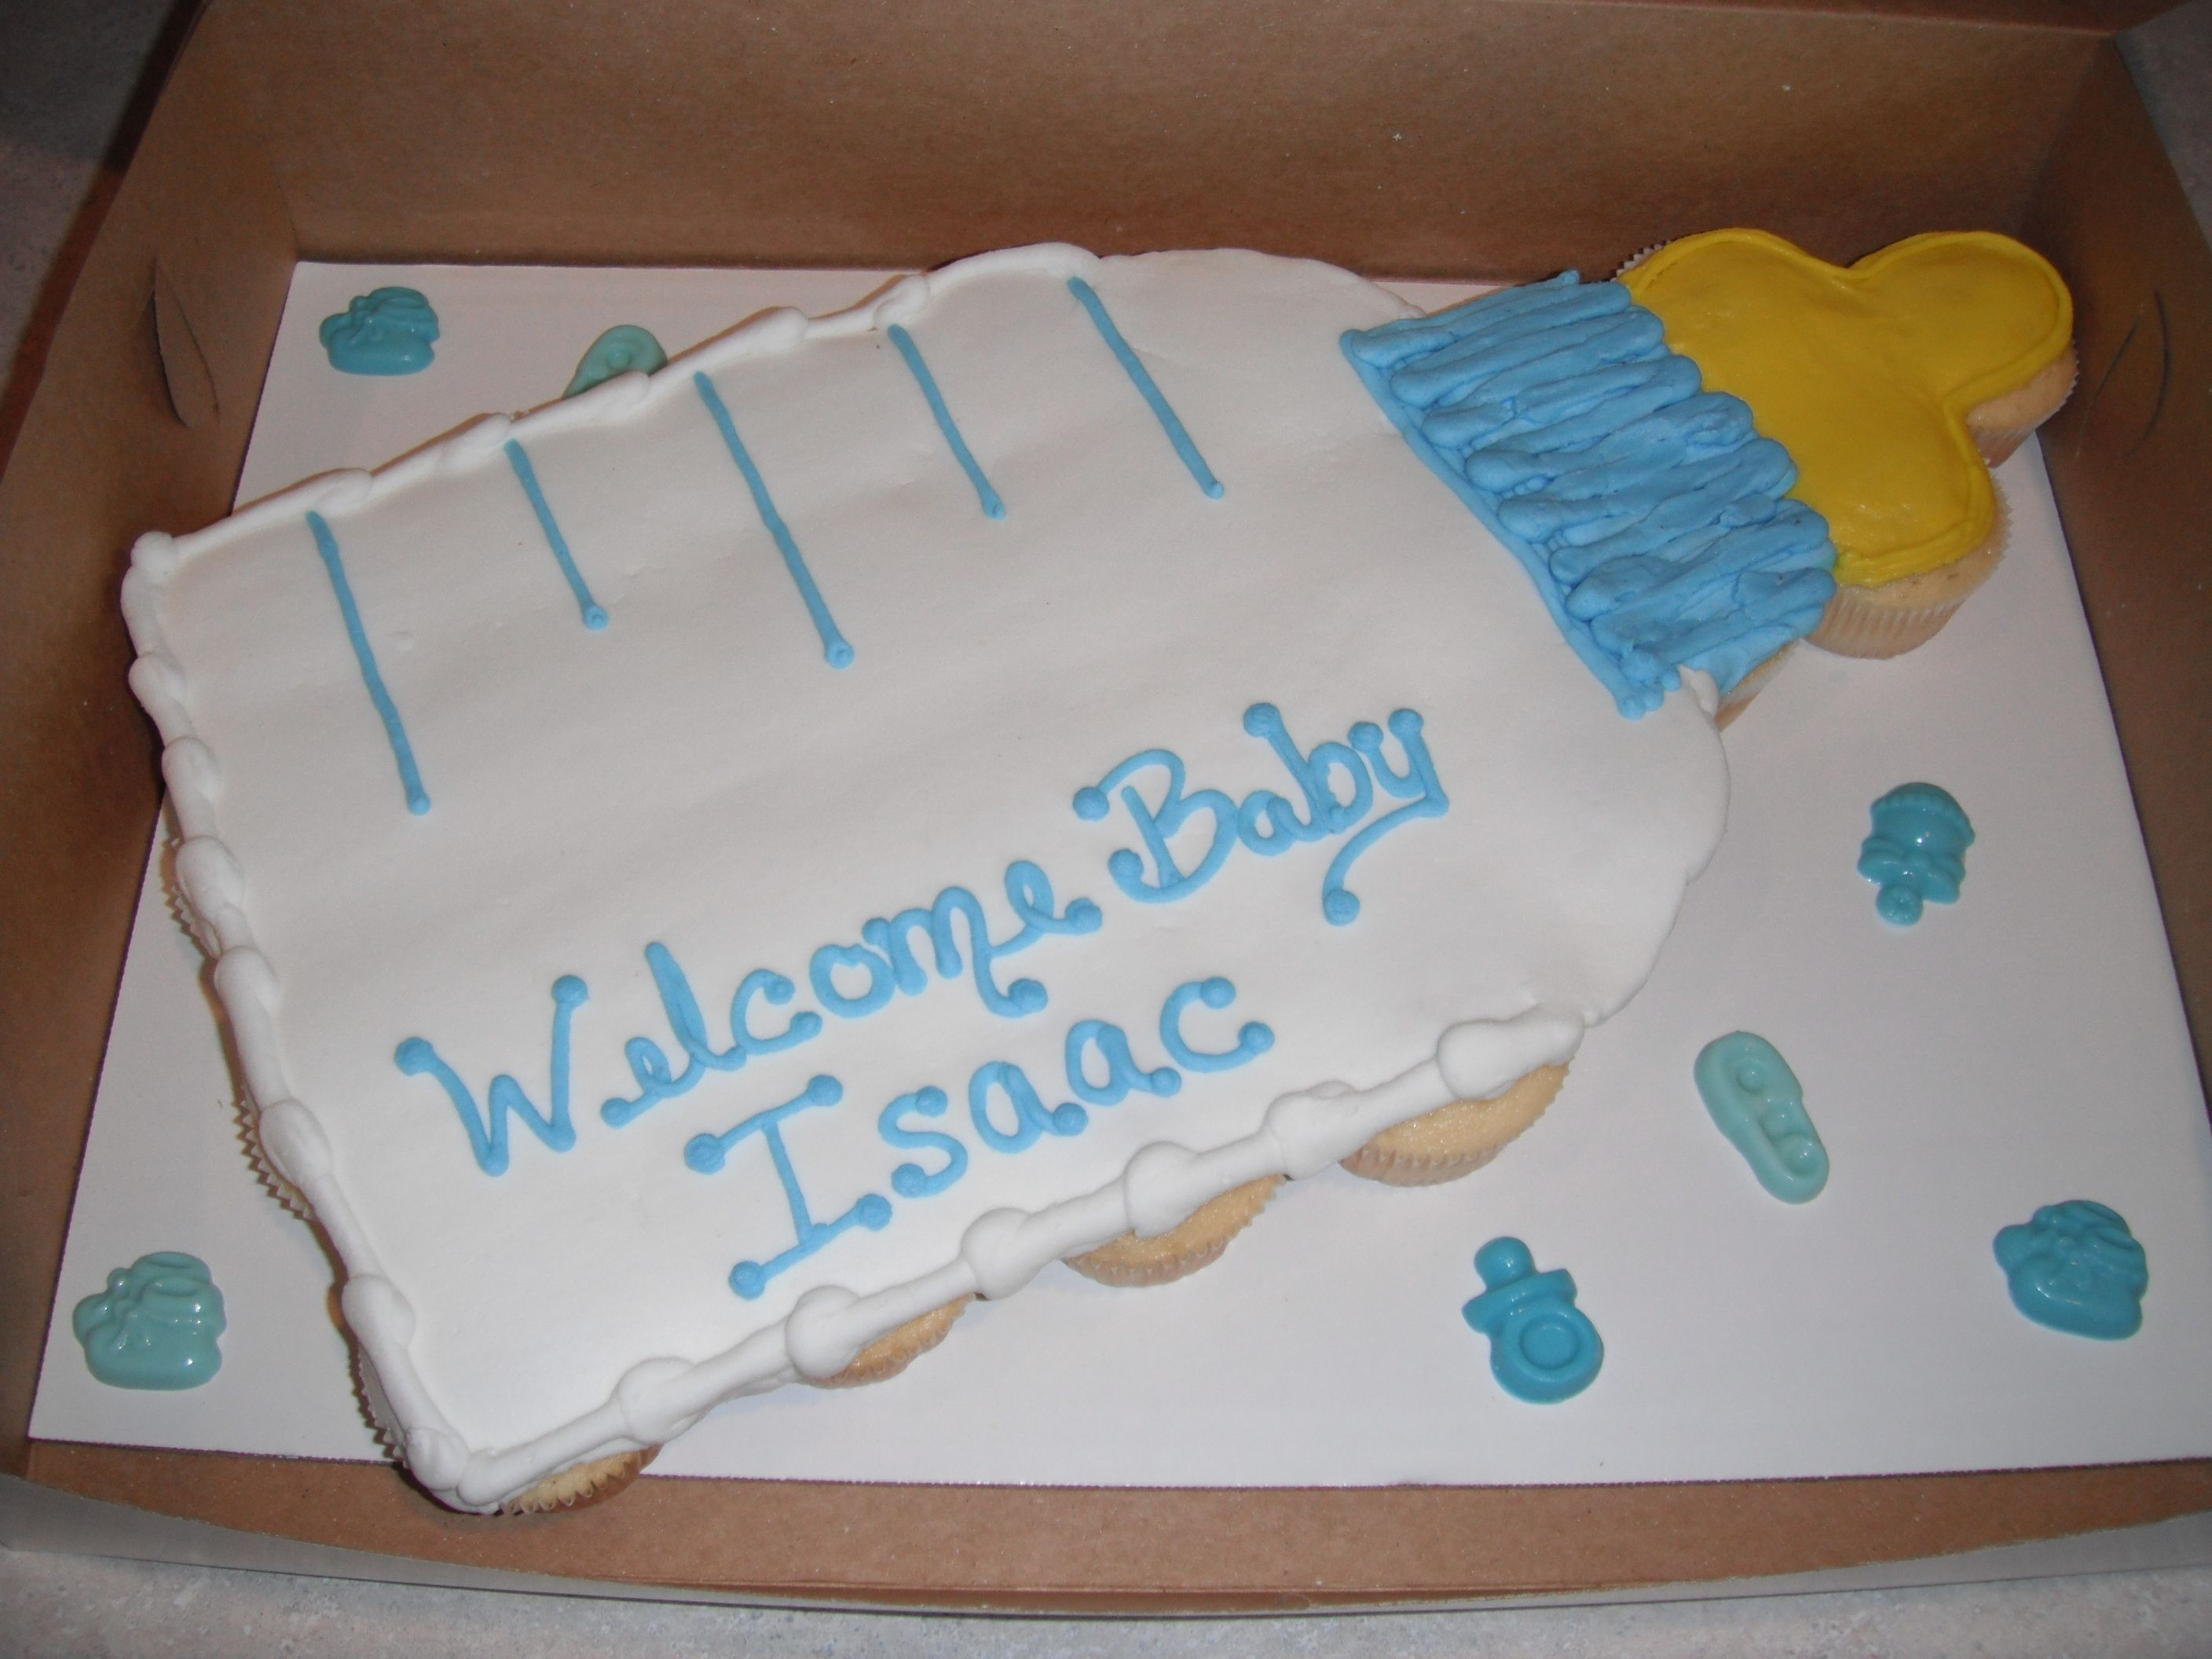 Baby Shaped Cake Images : Baby Shower Pull-Apart Cake - Pull-apart (cupcakes) cake ...